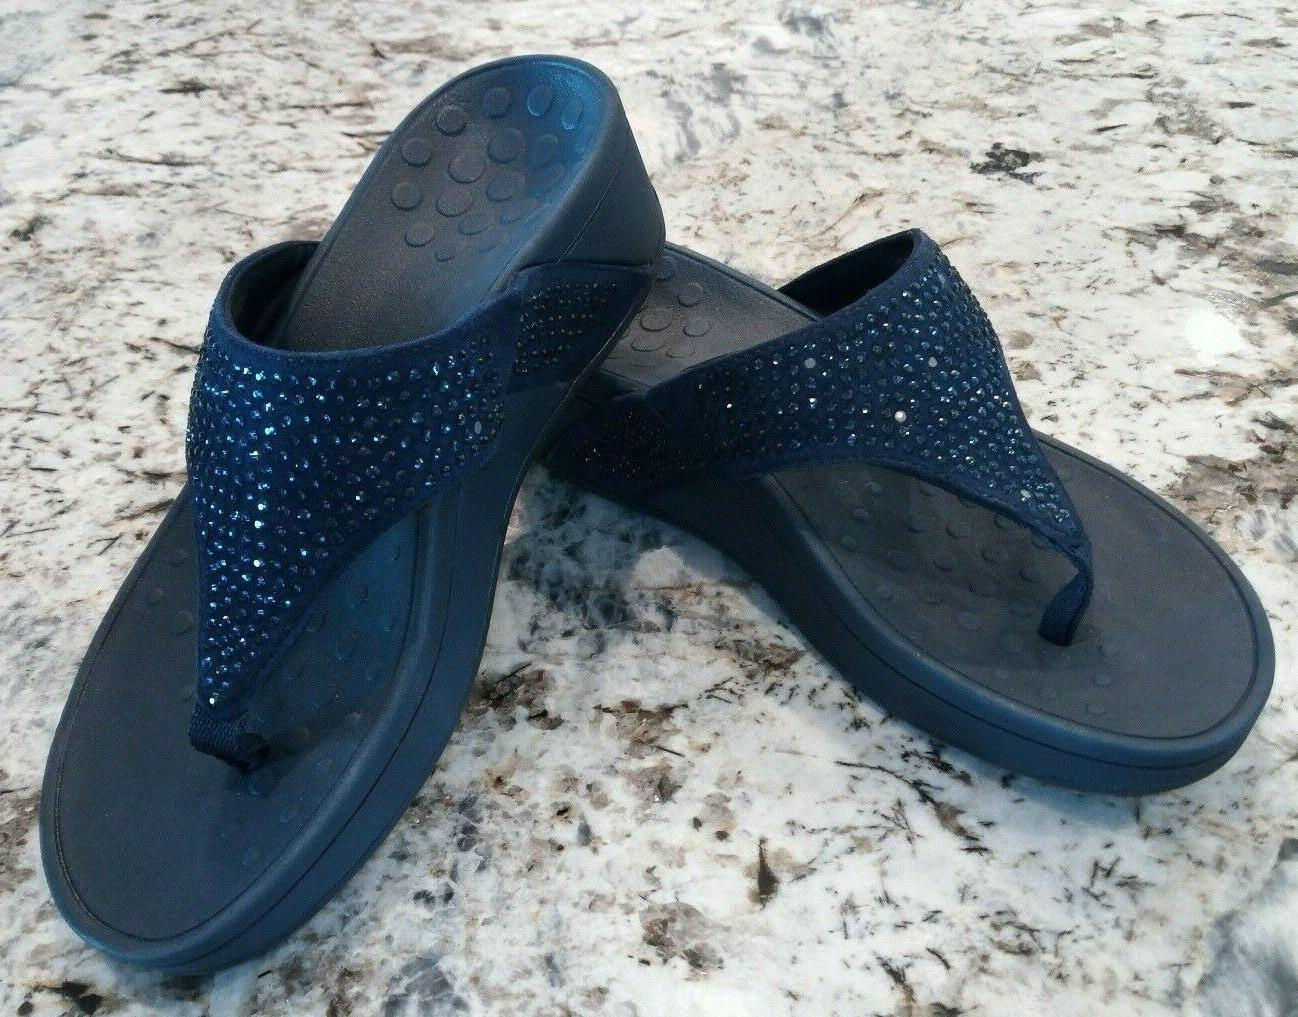 new with flaws crystal flip flop wedge